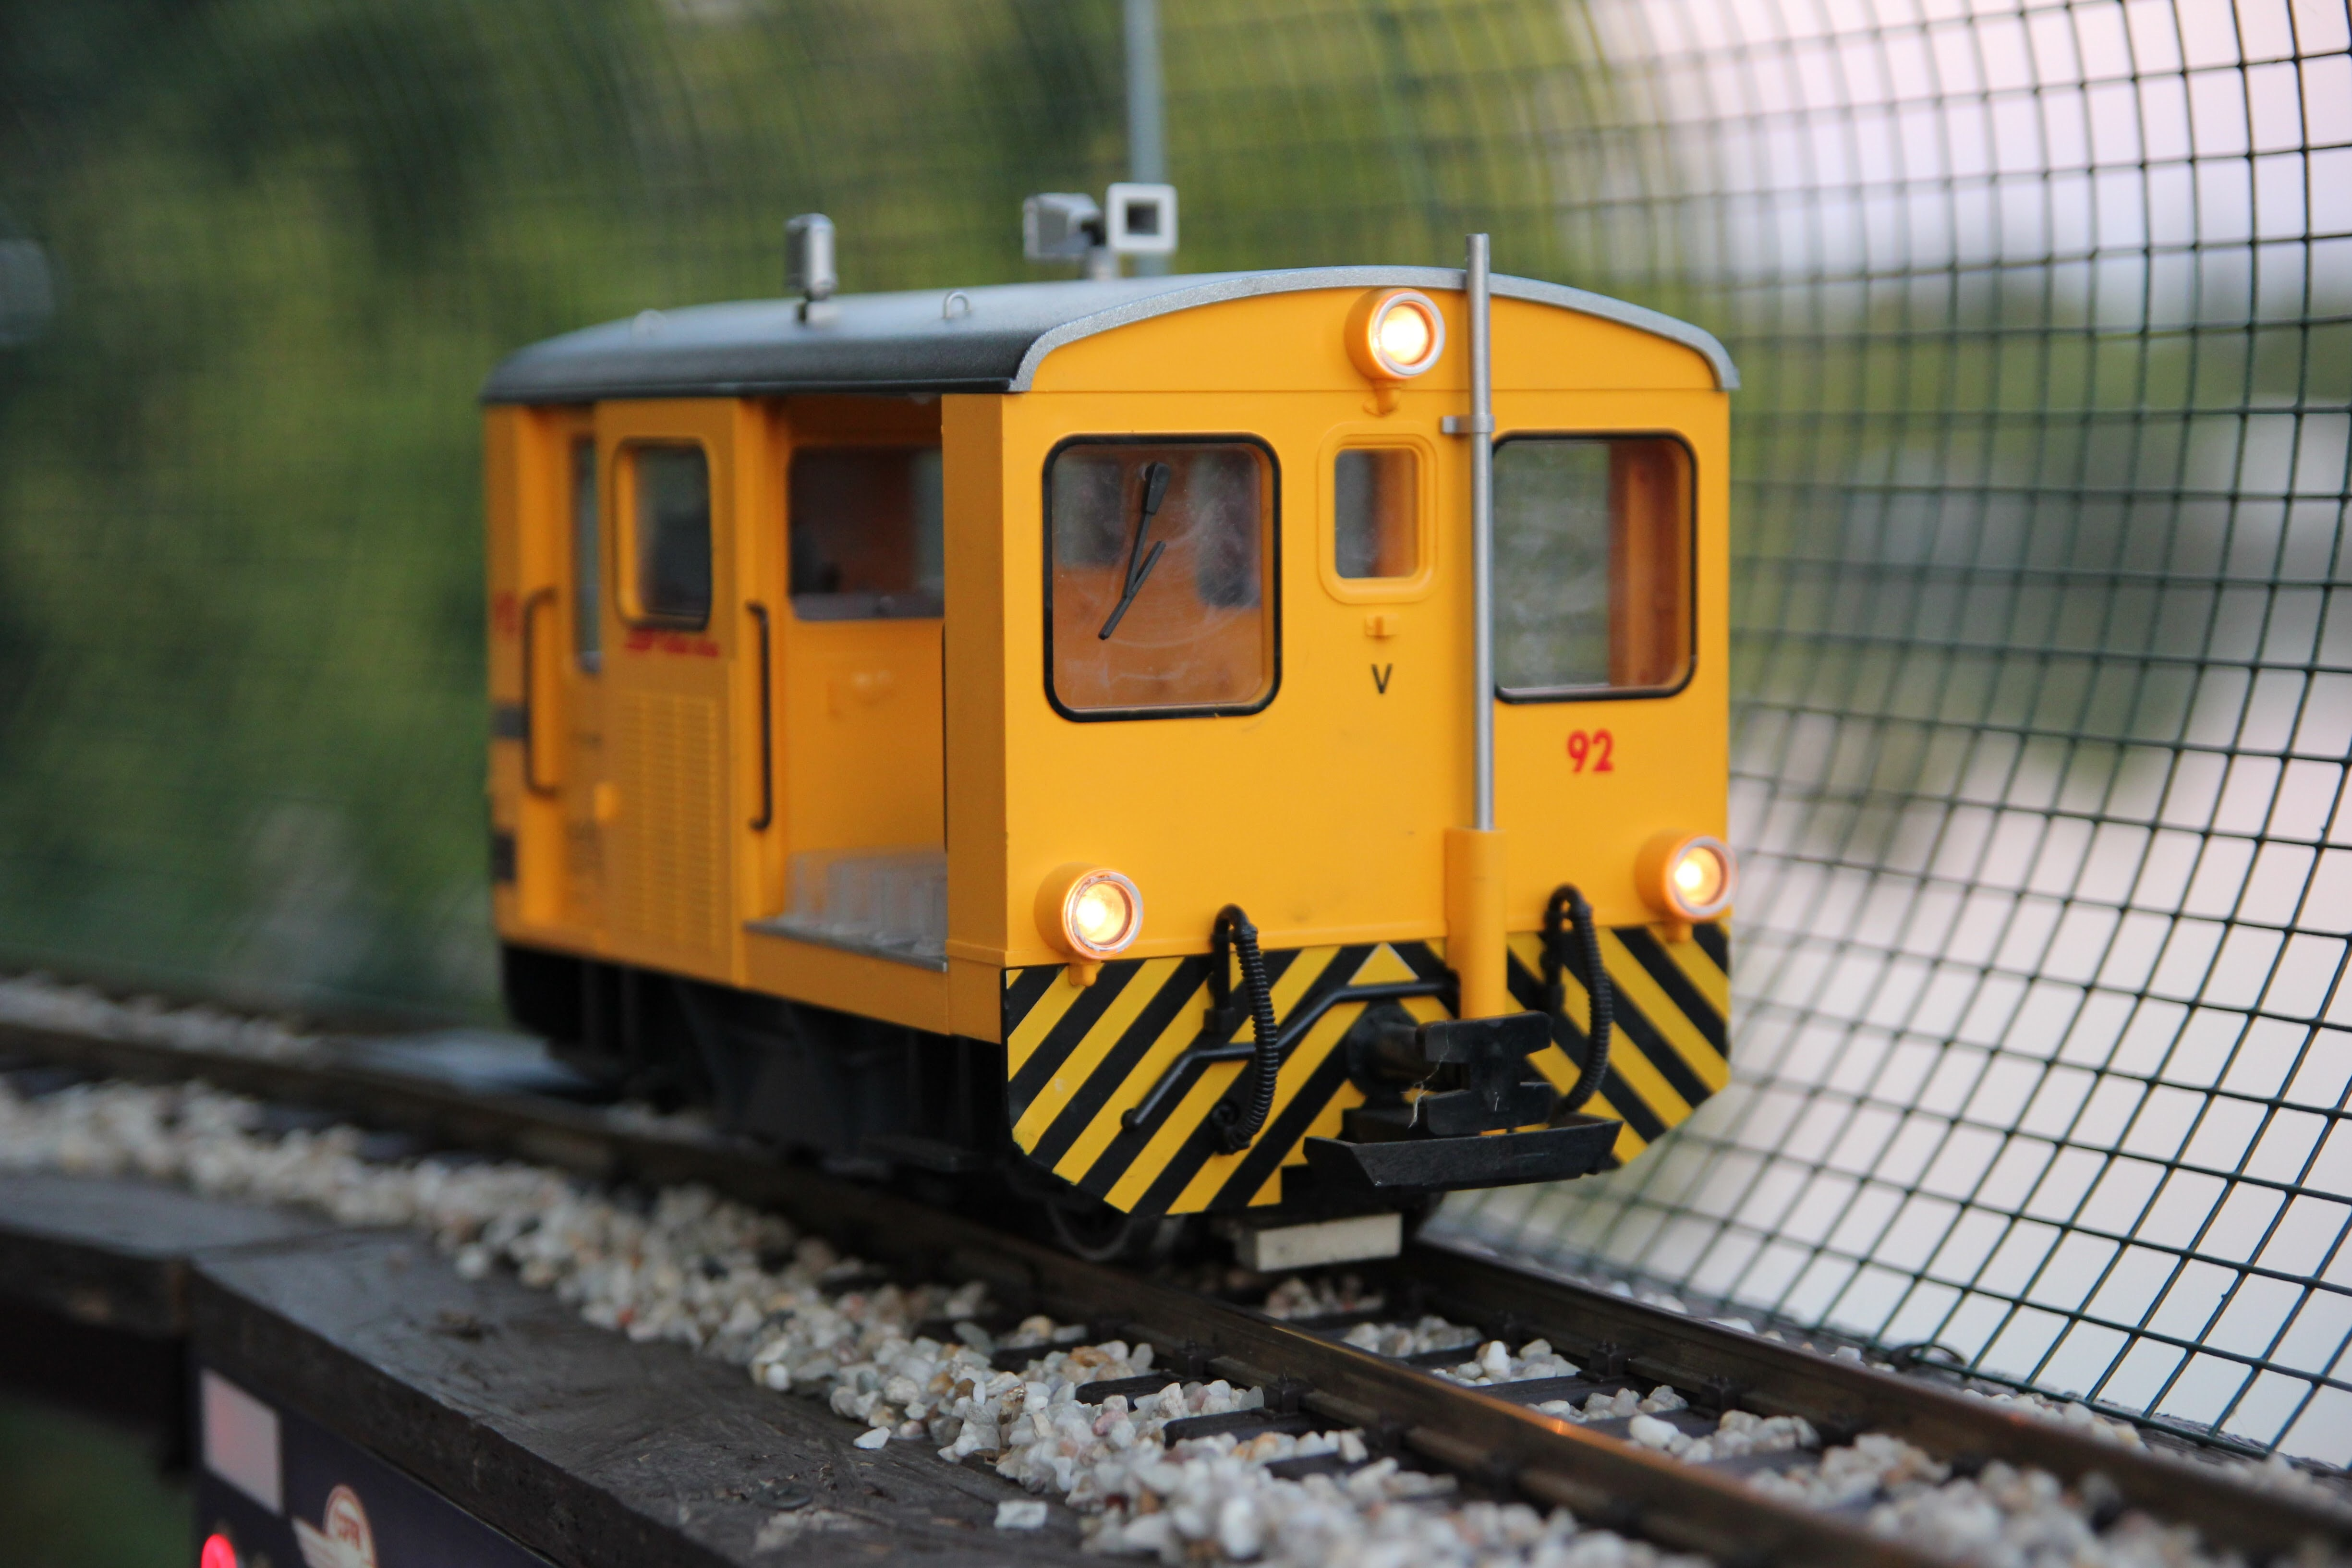 Yellow miniature railcar on a track with gravel and controls besides a wire fence